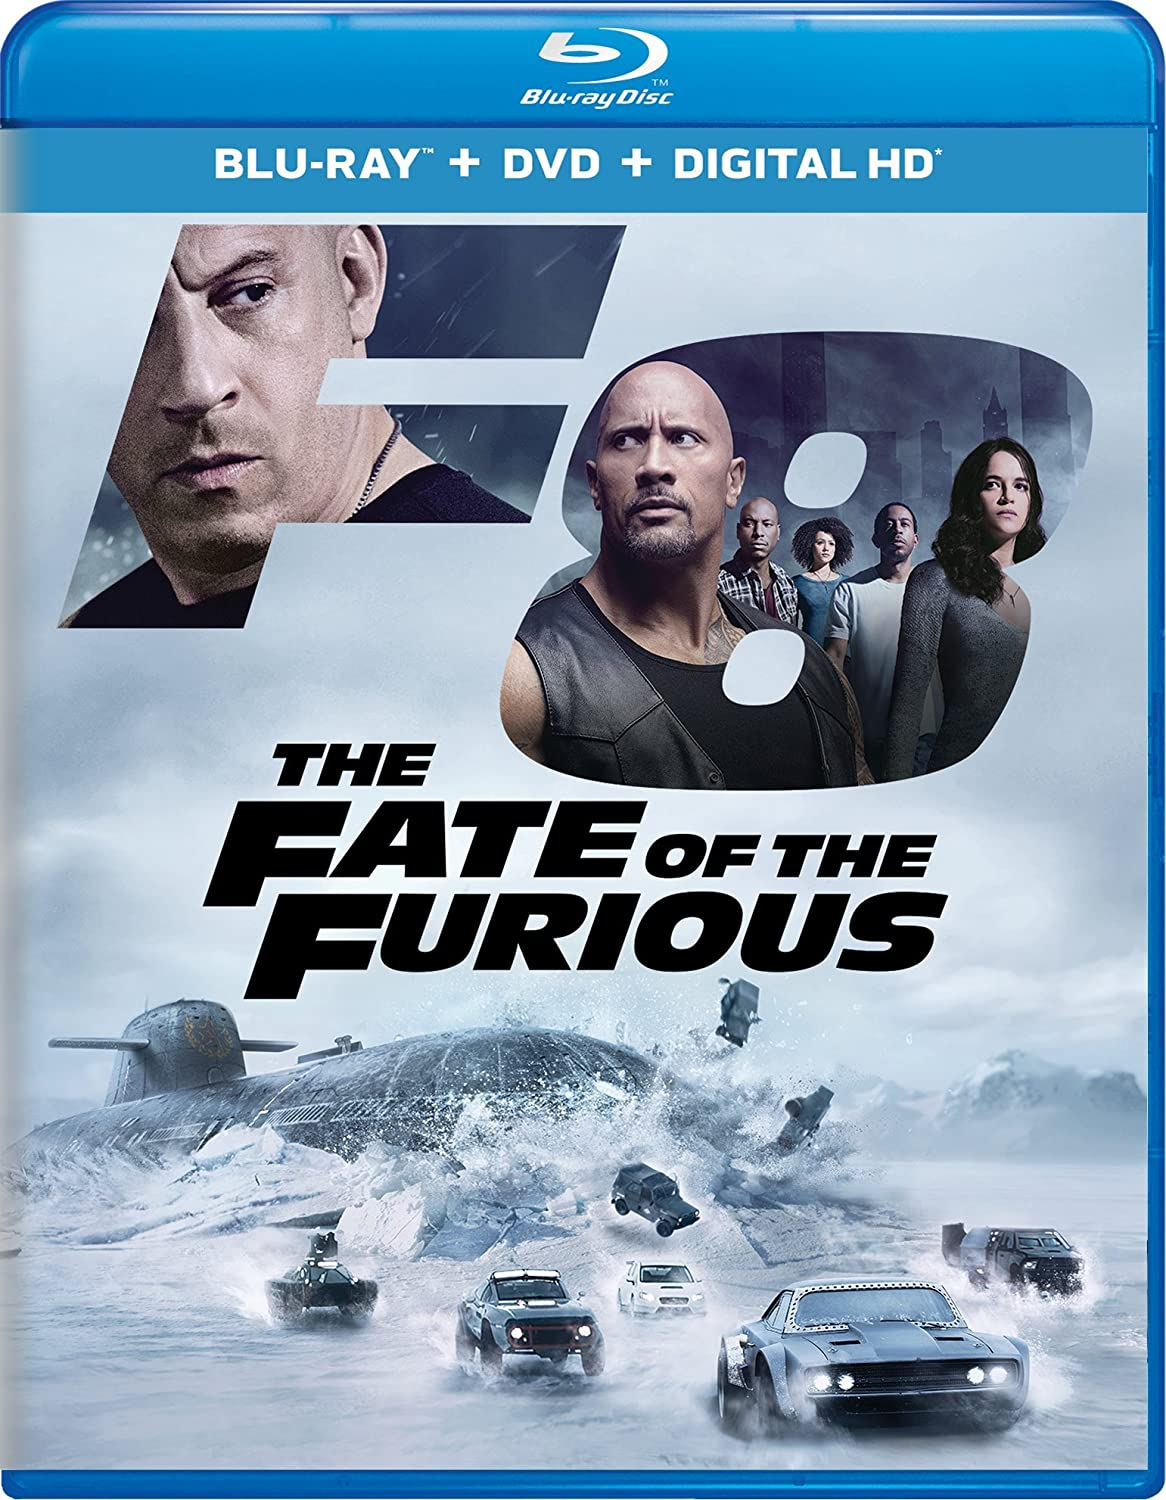 The Fate of the Furious (2017) 1080p 5.9GB BluRay [Hindi DTS 5.1 – English DD5.1] Msubs MKV